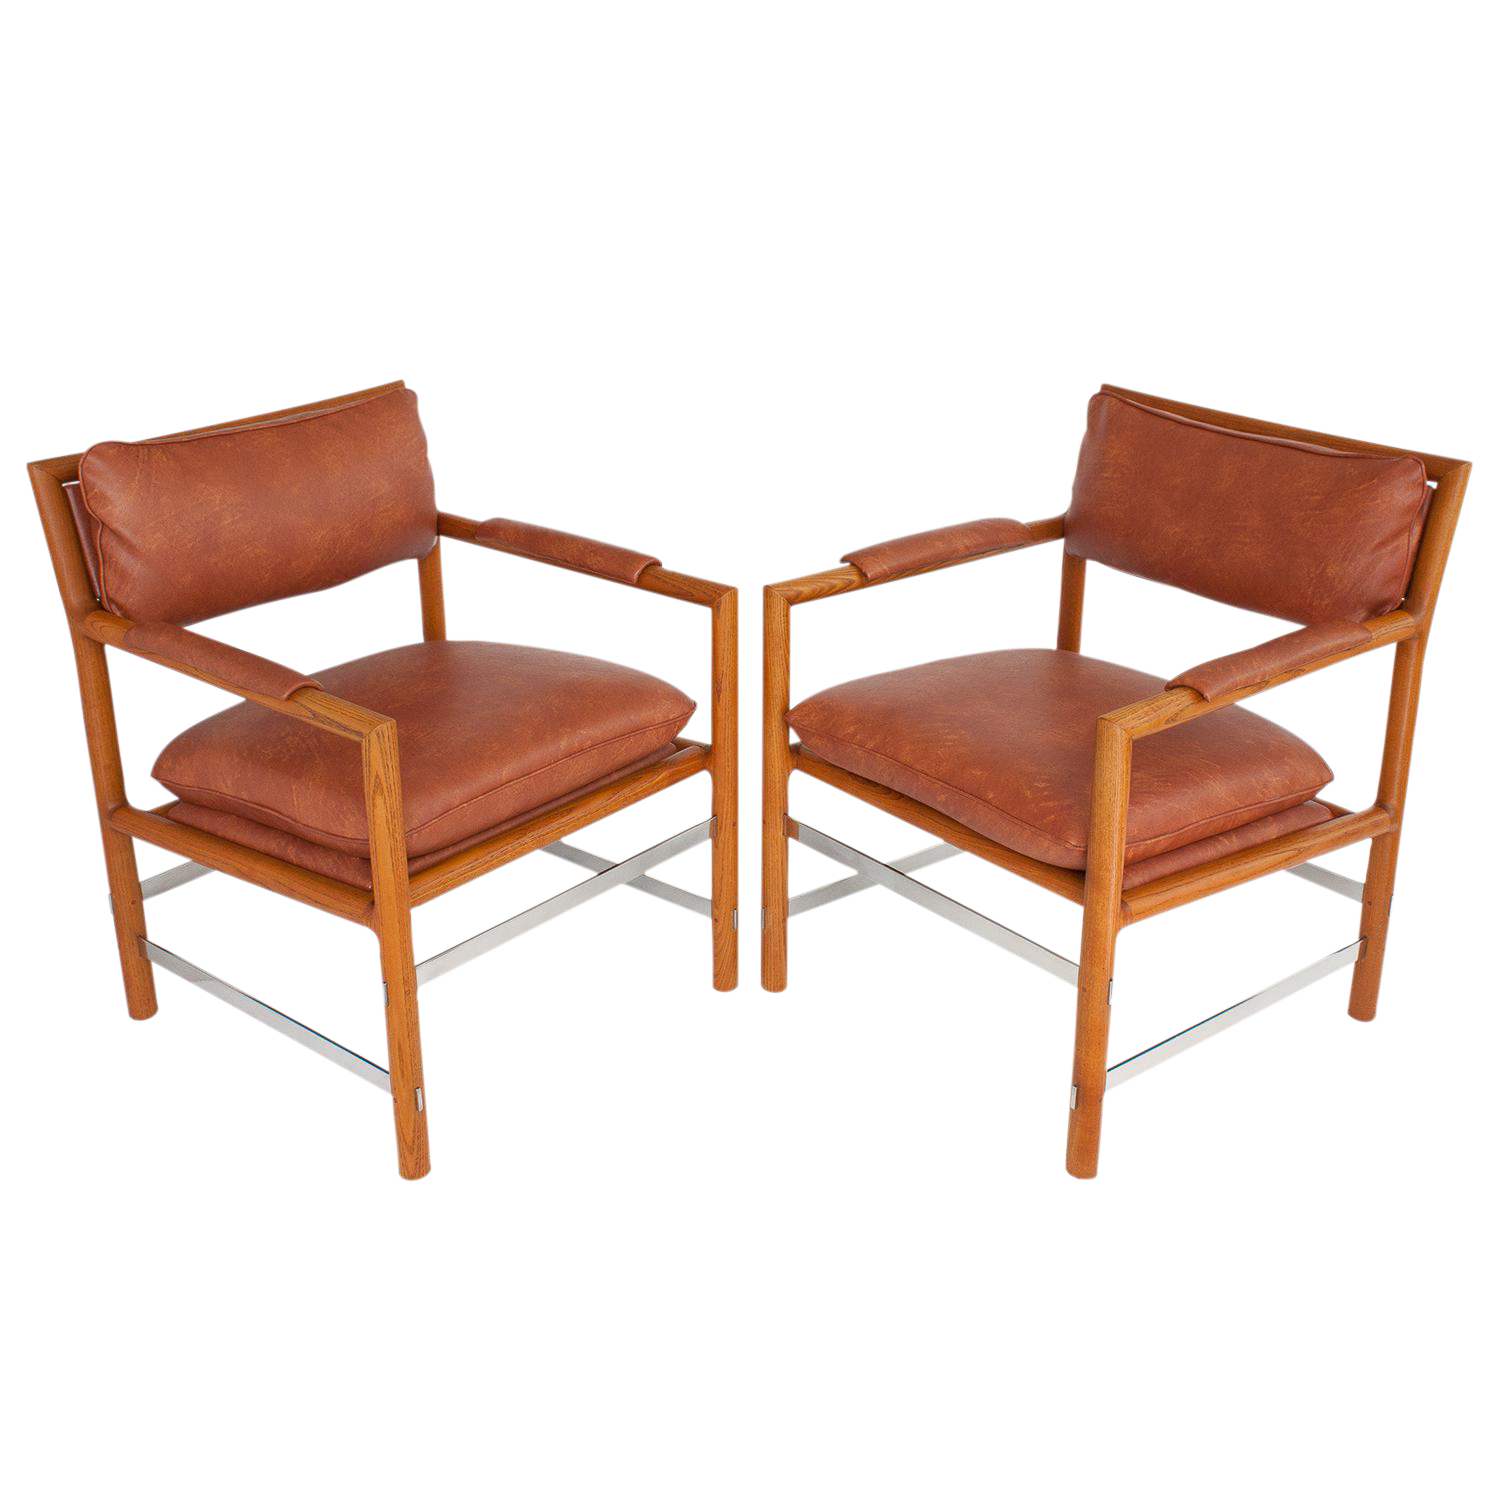 Captivating Edwardu0027s Chairs By Edward Wormley For Dunbar   A Pair